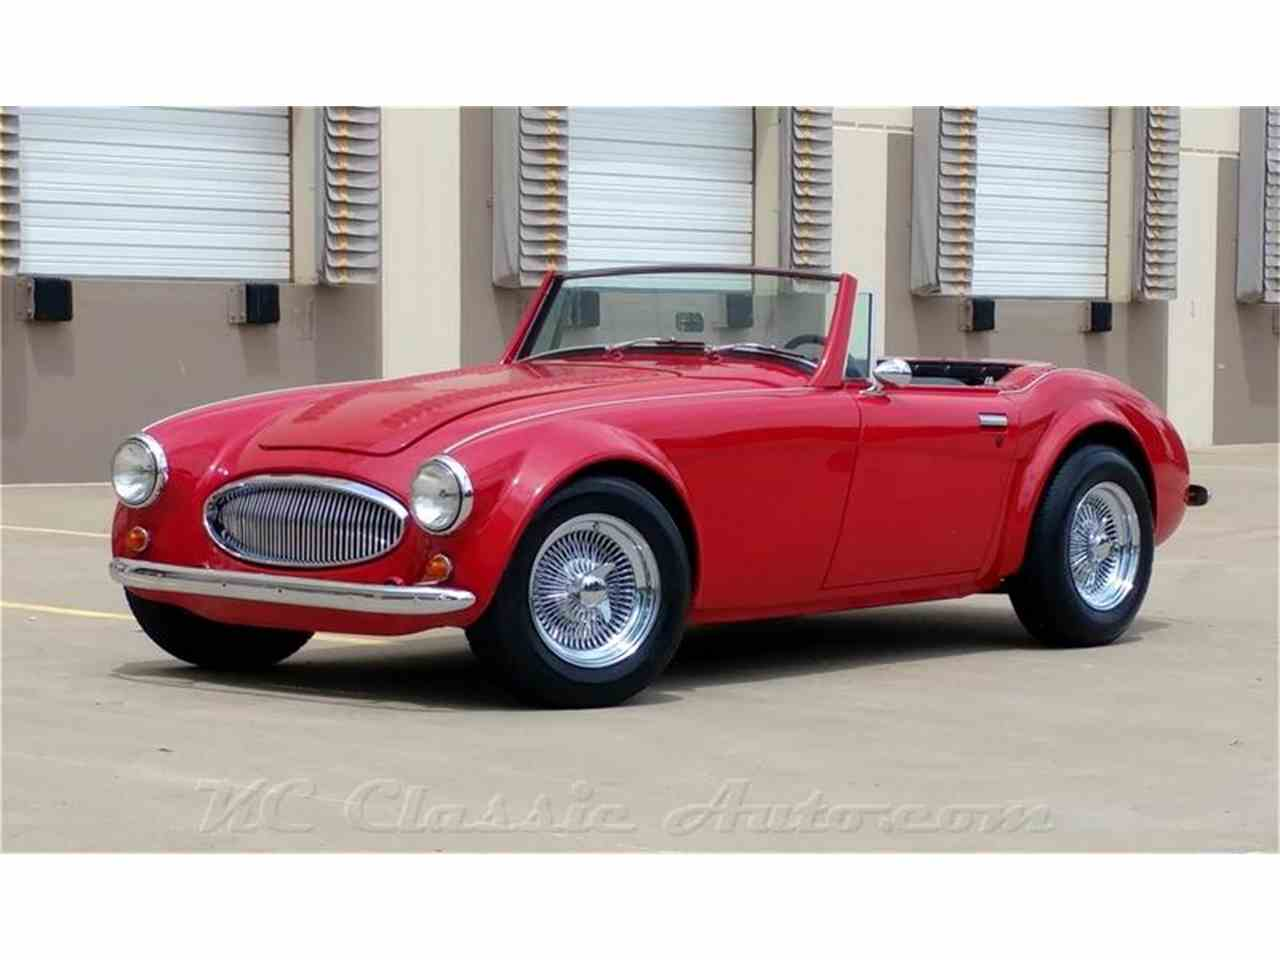 Classic Austin Healey Sebring For Sale On Classiccars Com